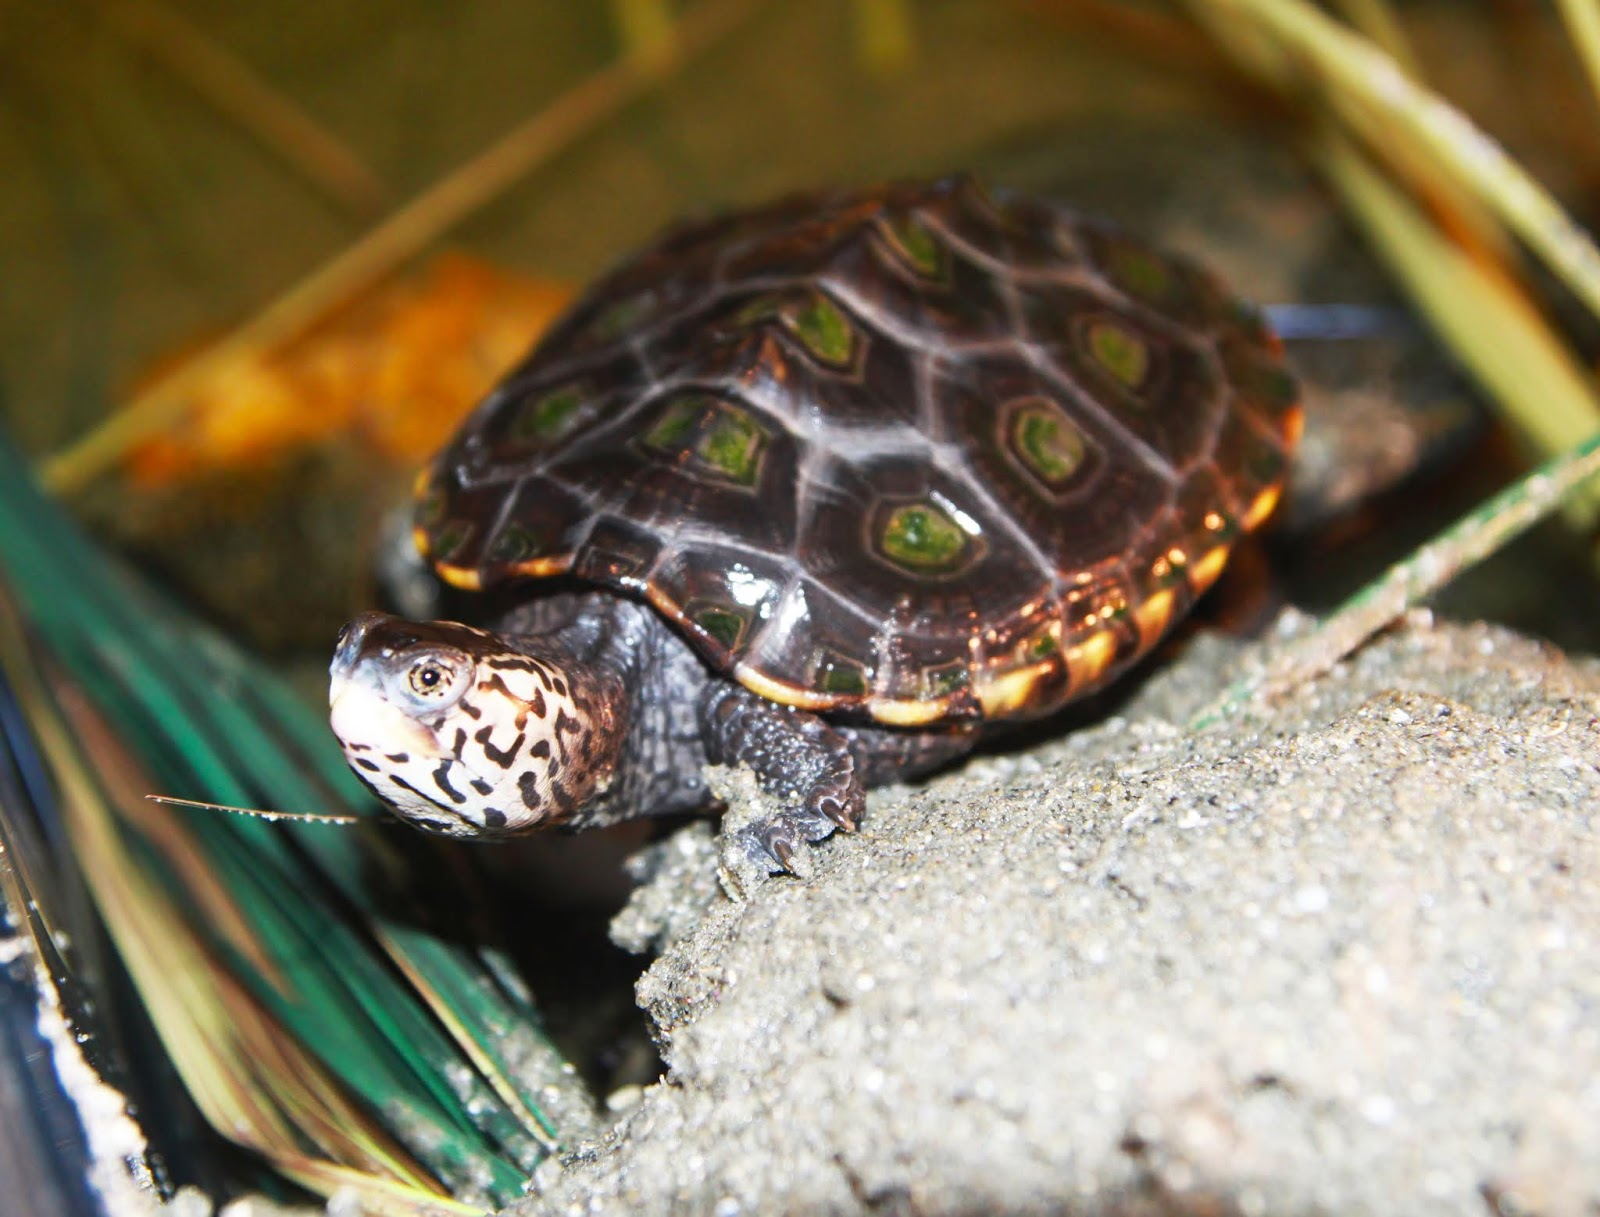 Jerry, one of the two Diamondback Terrapins at Save The Bay's Exploration Center and Aquarium